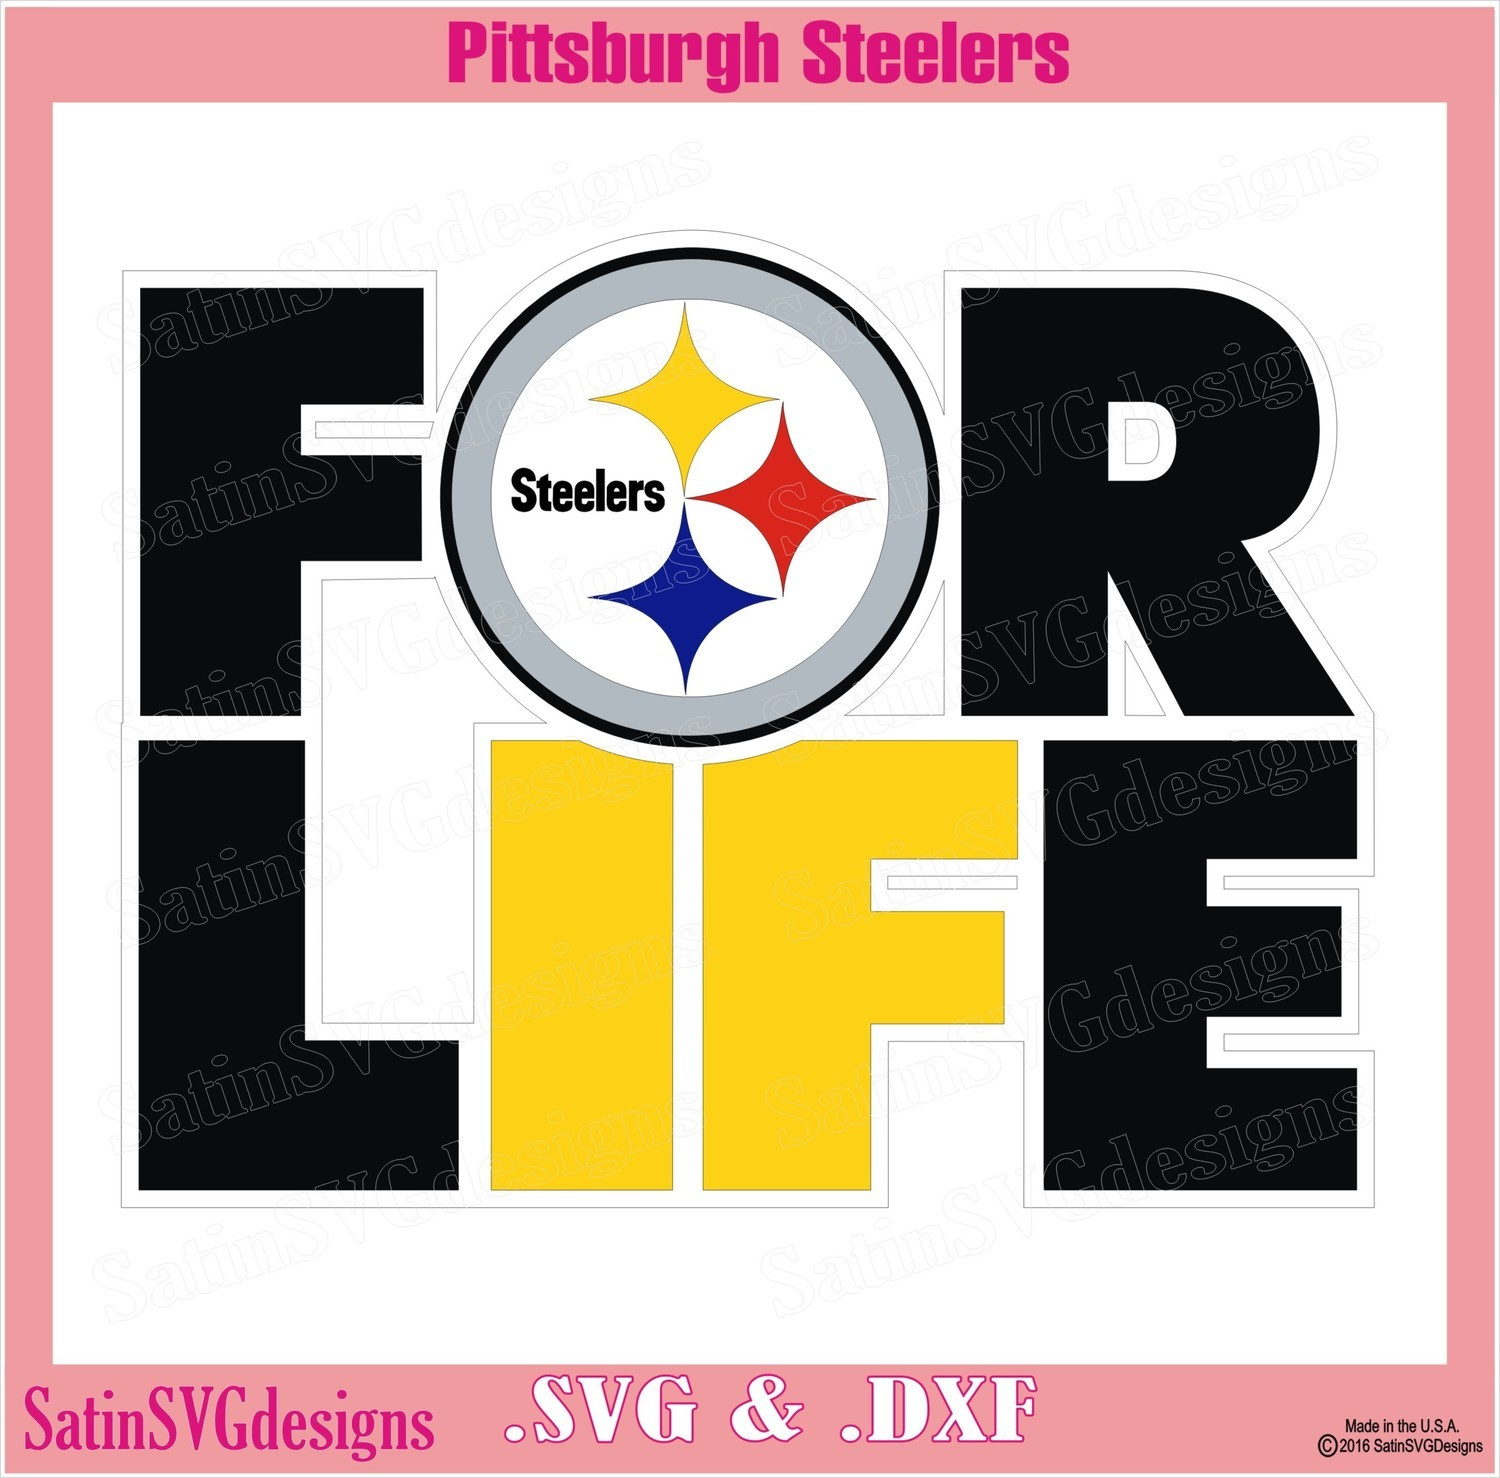 Pittsburgh Steelers For Life Design SVG Files, Cricut, Silhouette Studio, Digital Cut Files